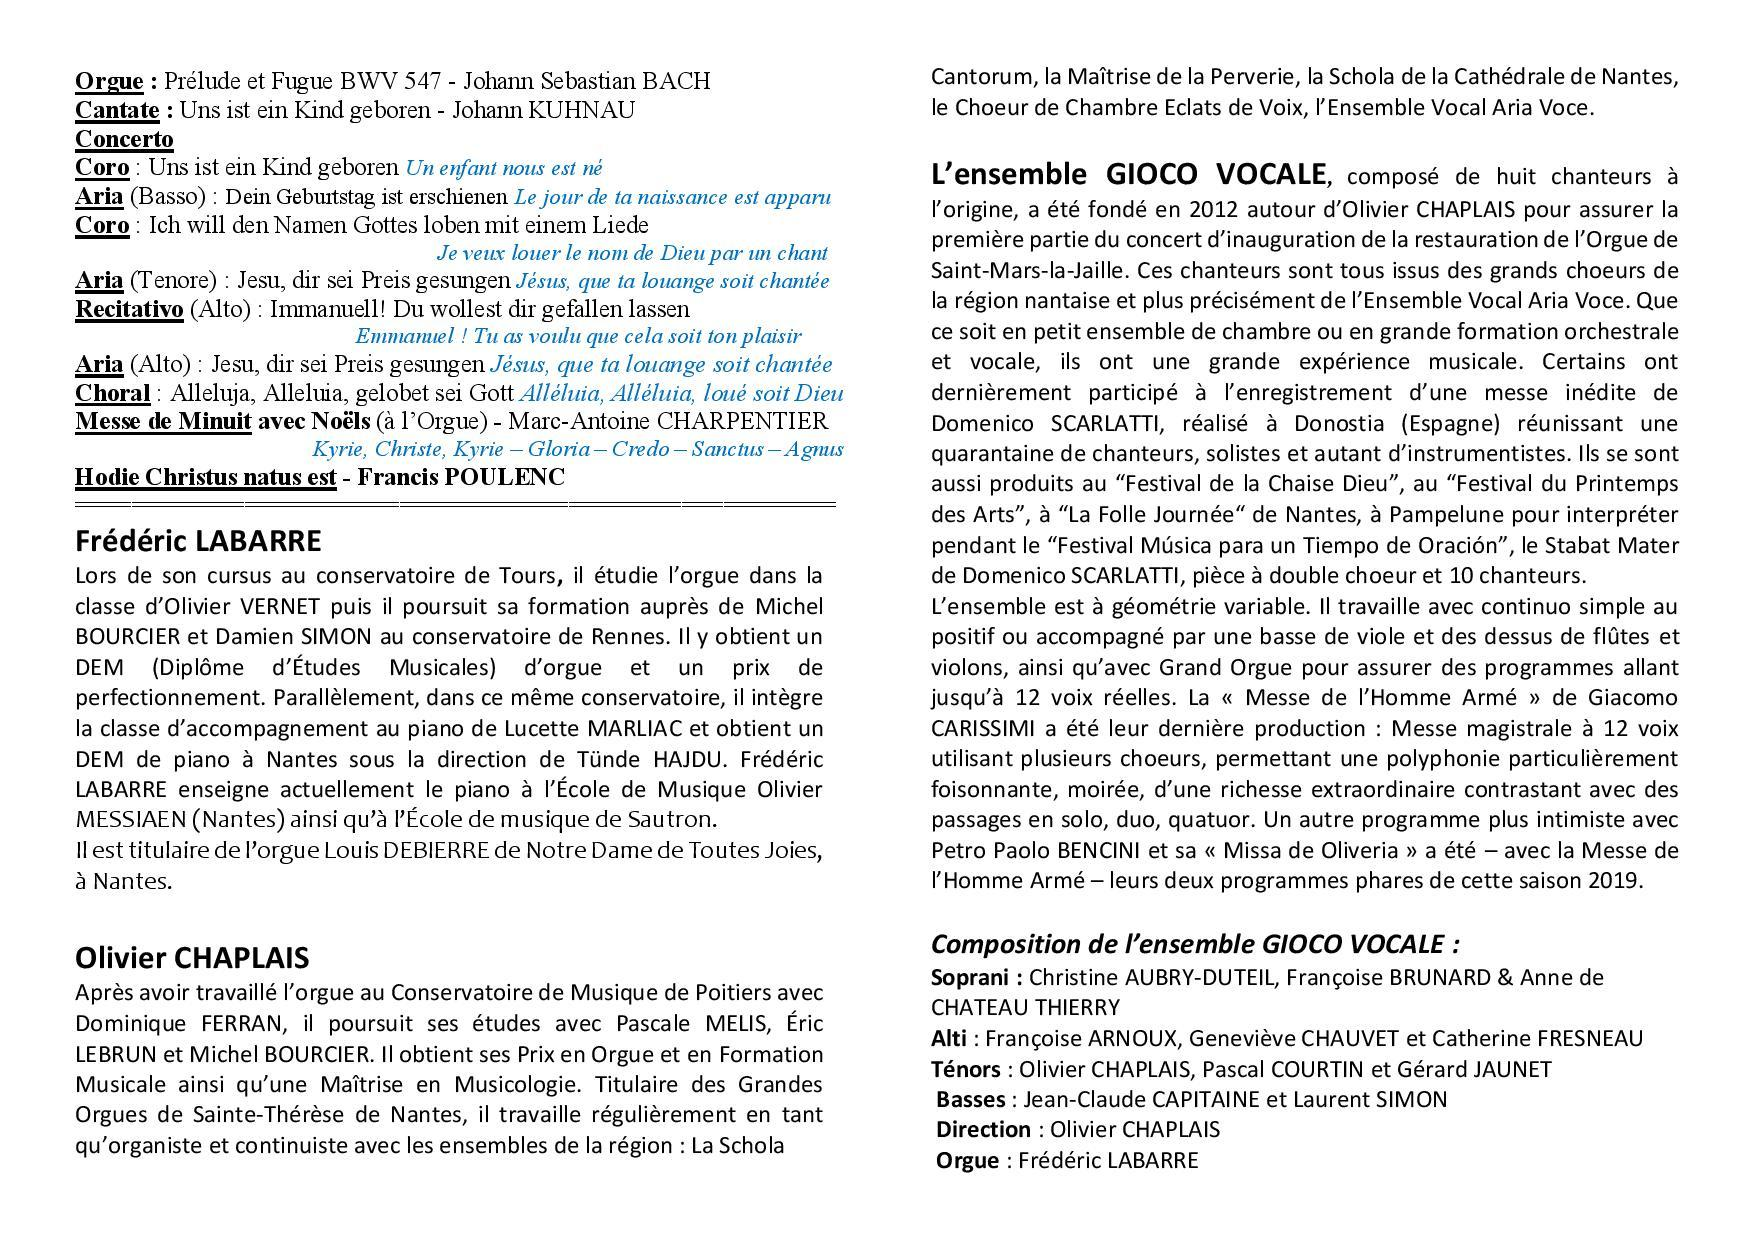 2021 12 12 programme gioco vocale concert noel page 2